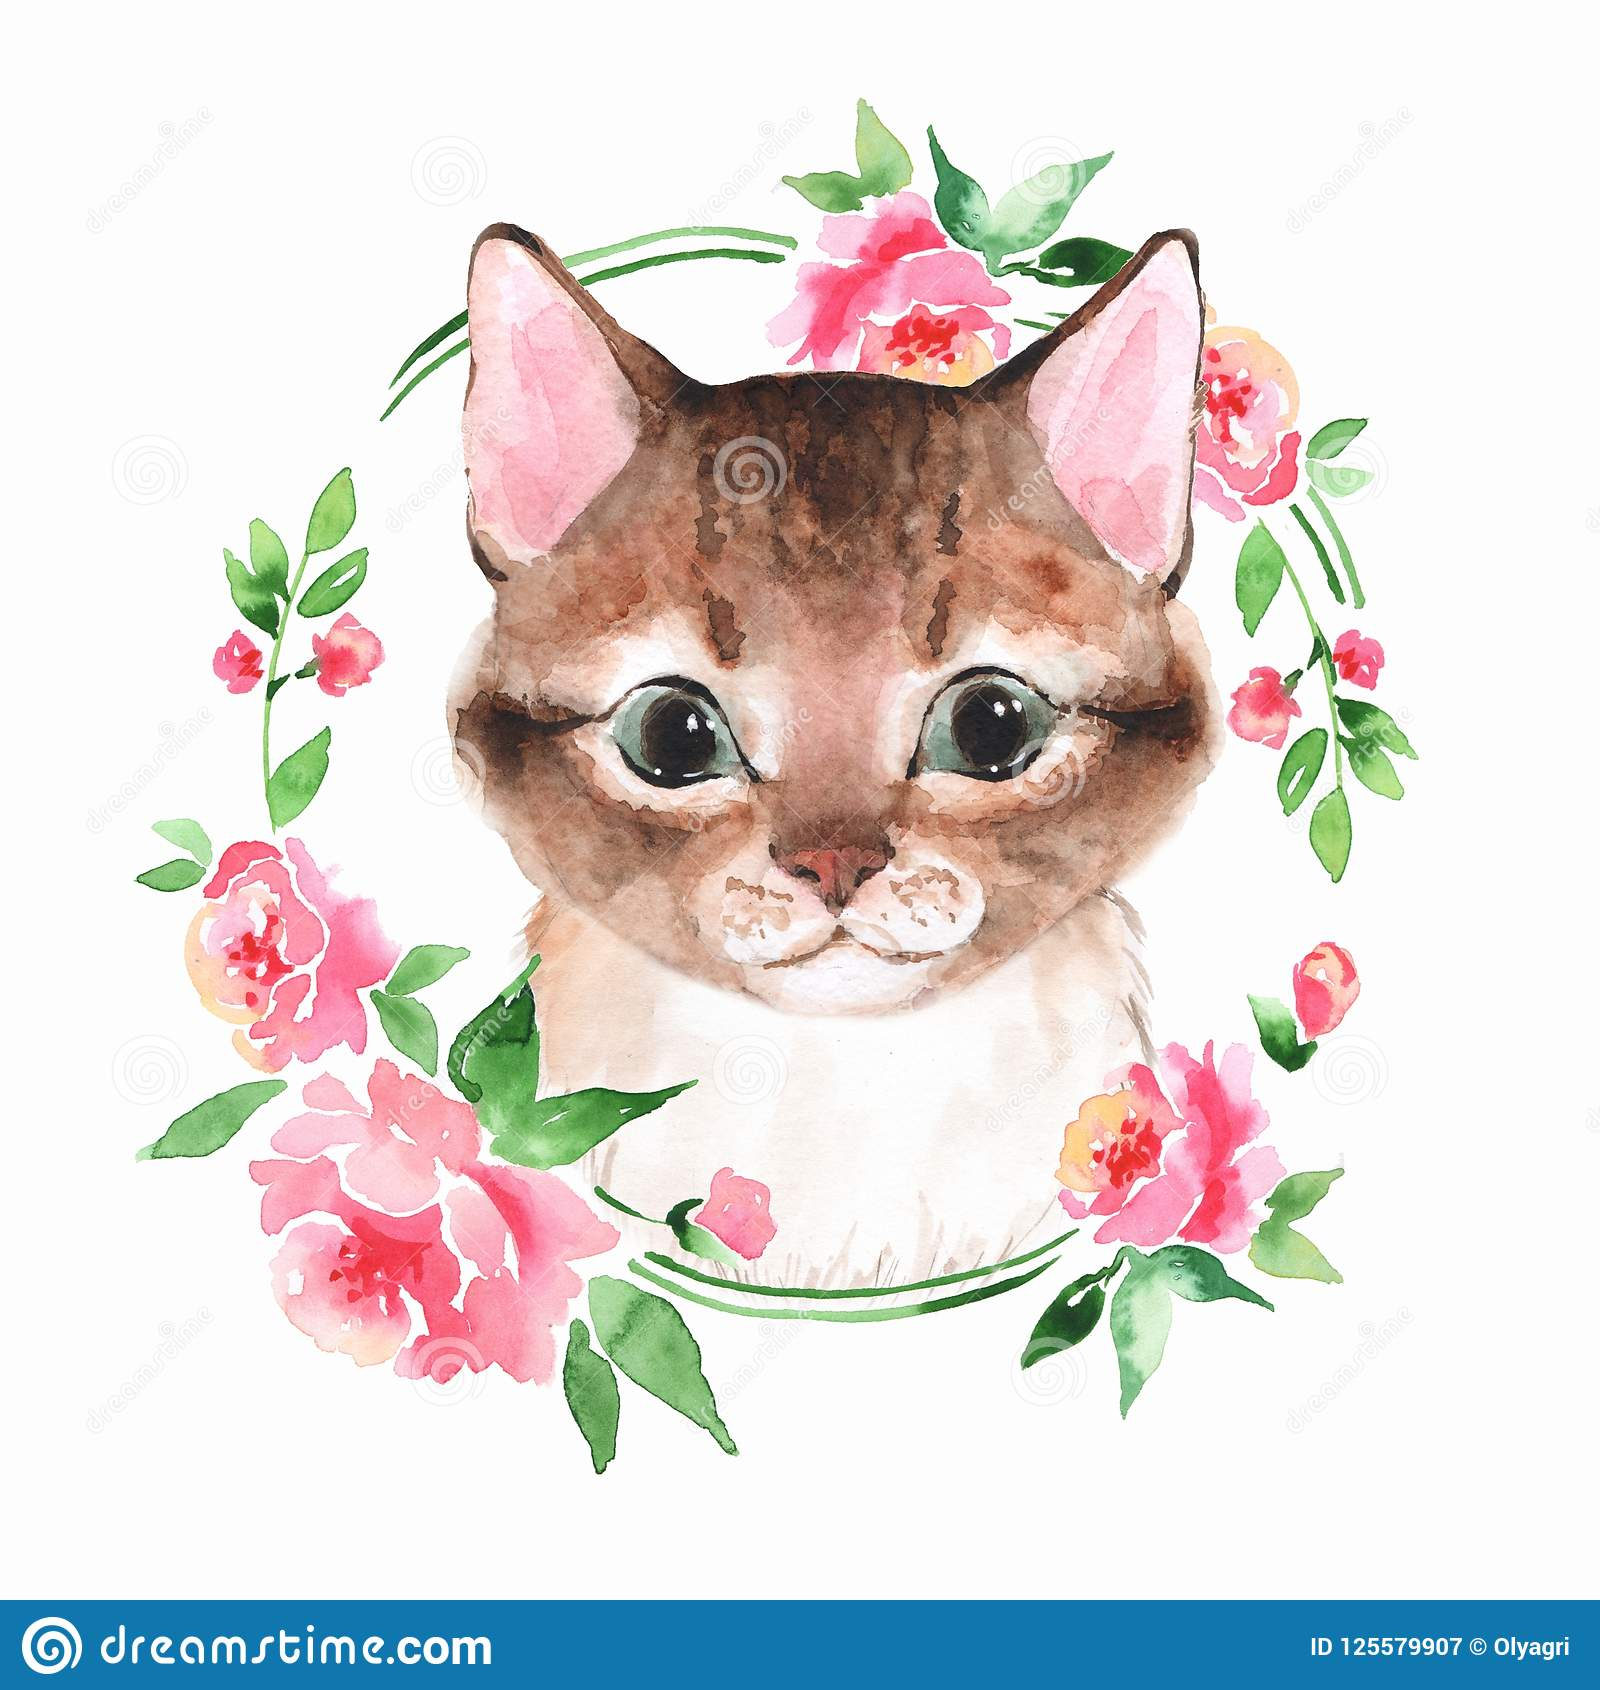 Cat and flowers. Watercolor illustration 4